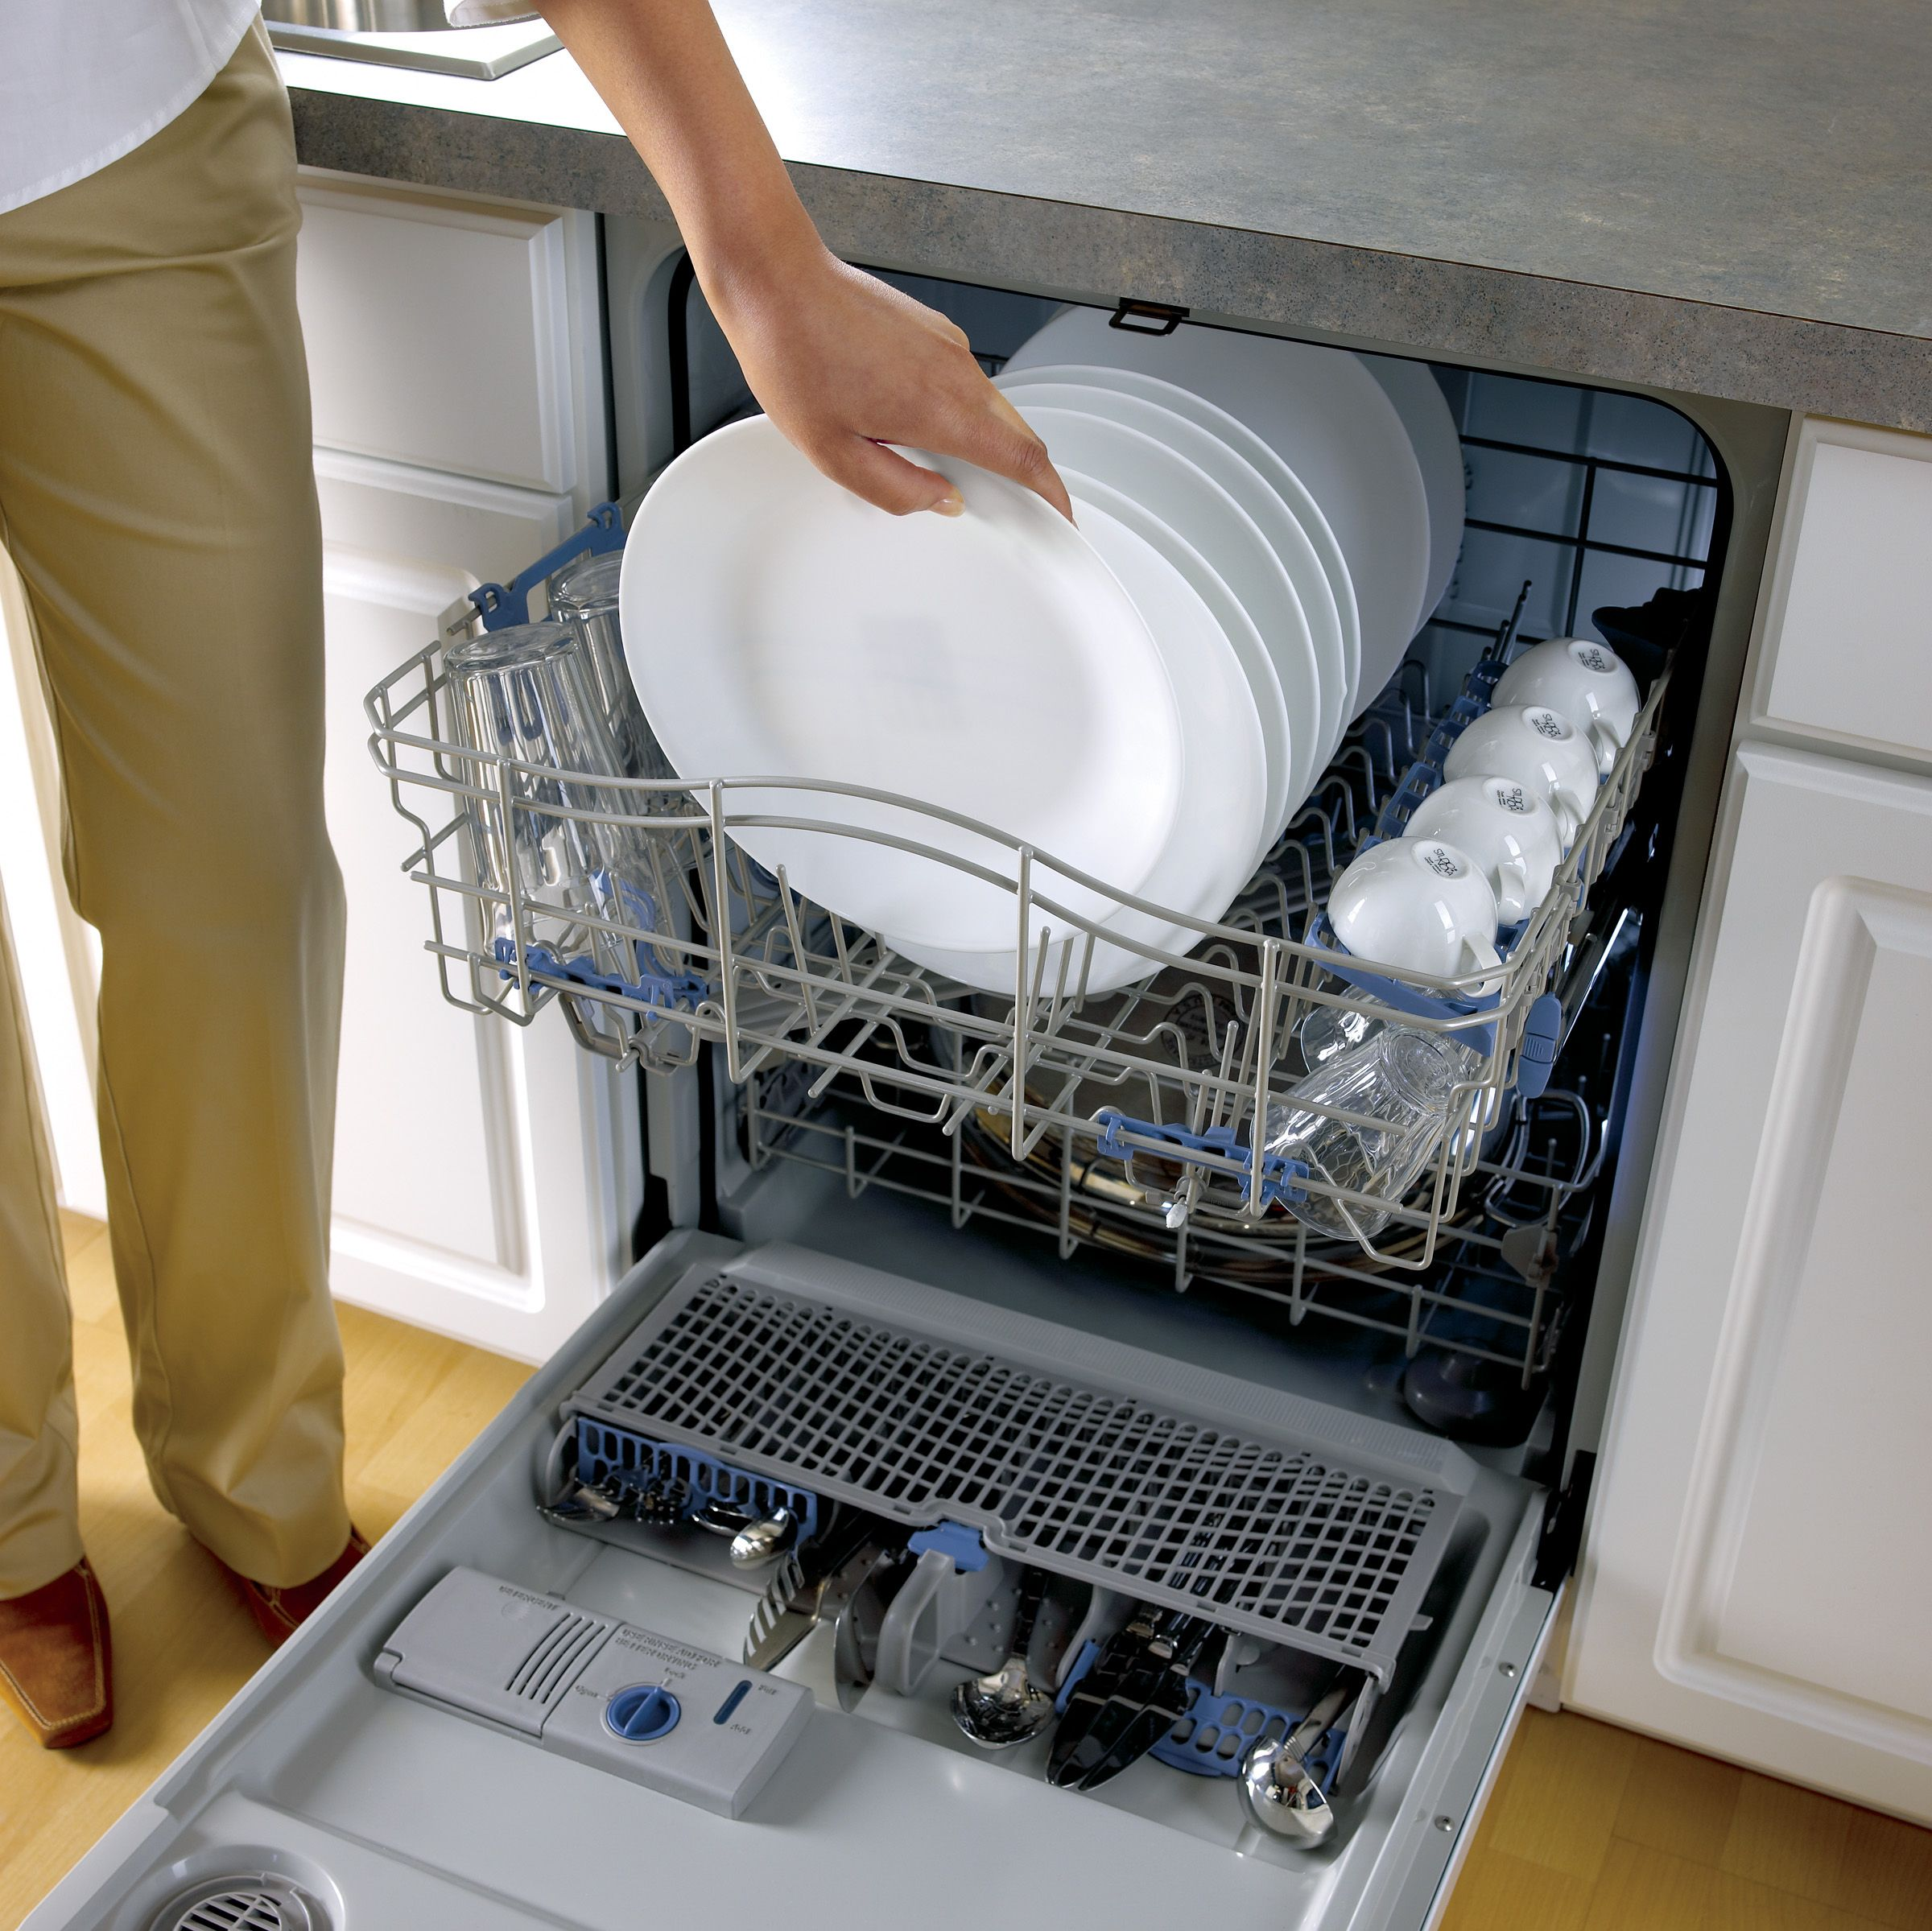 Whirlpool Gold 24 in. Built-In Dishwasher